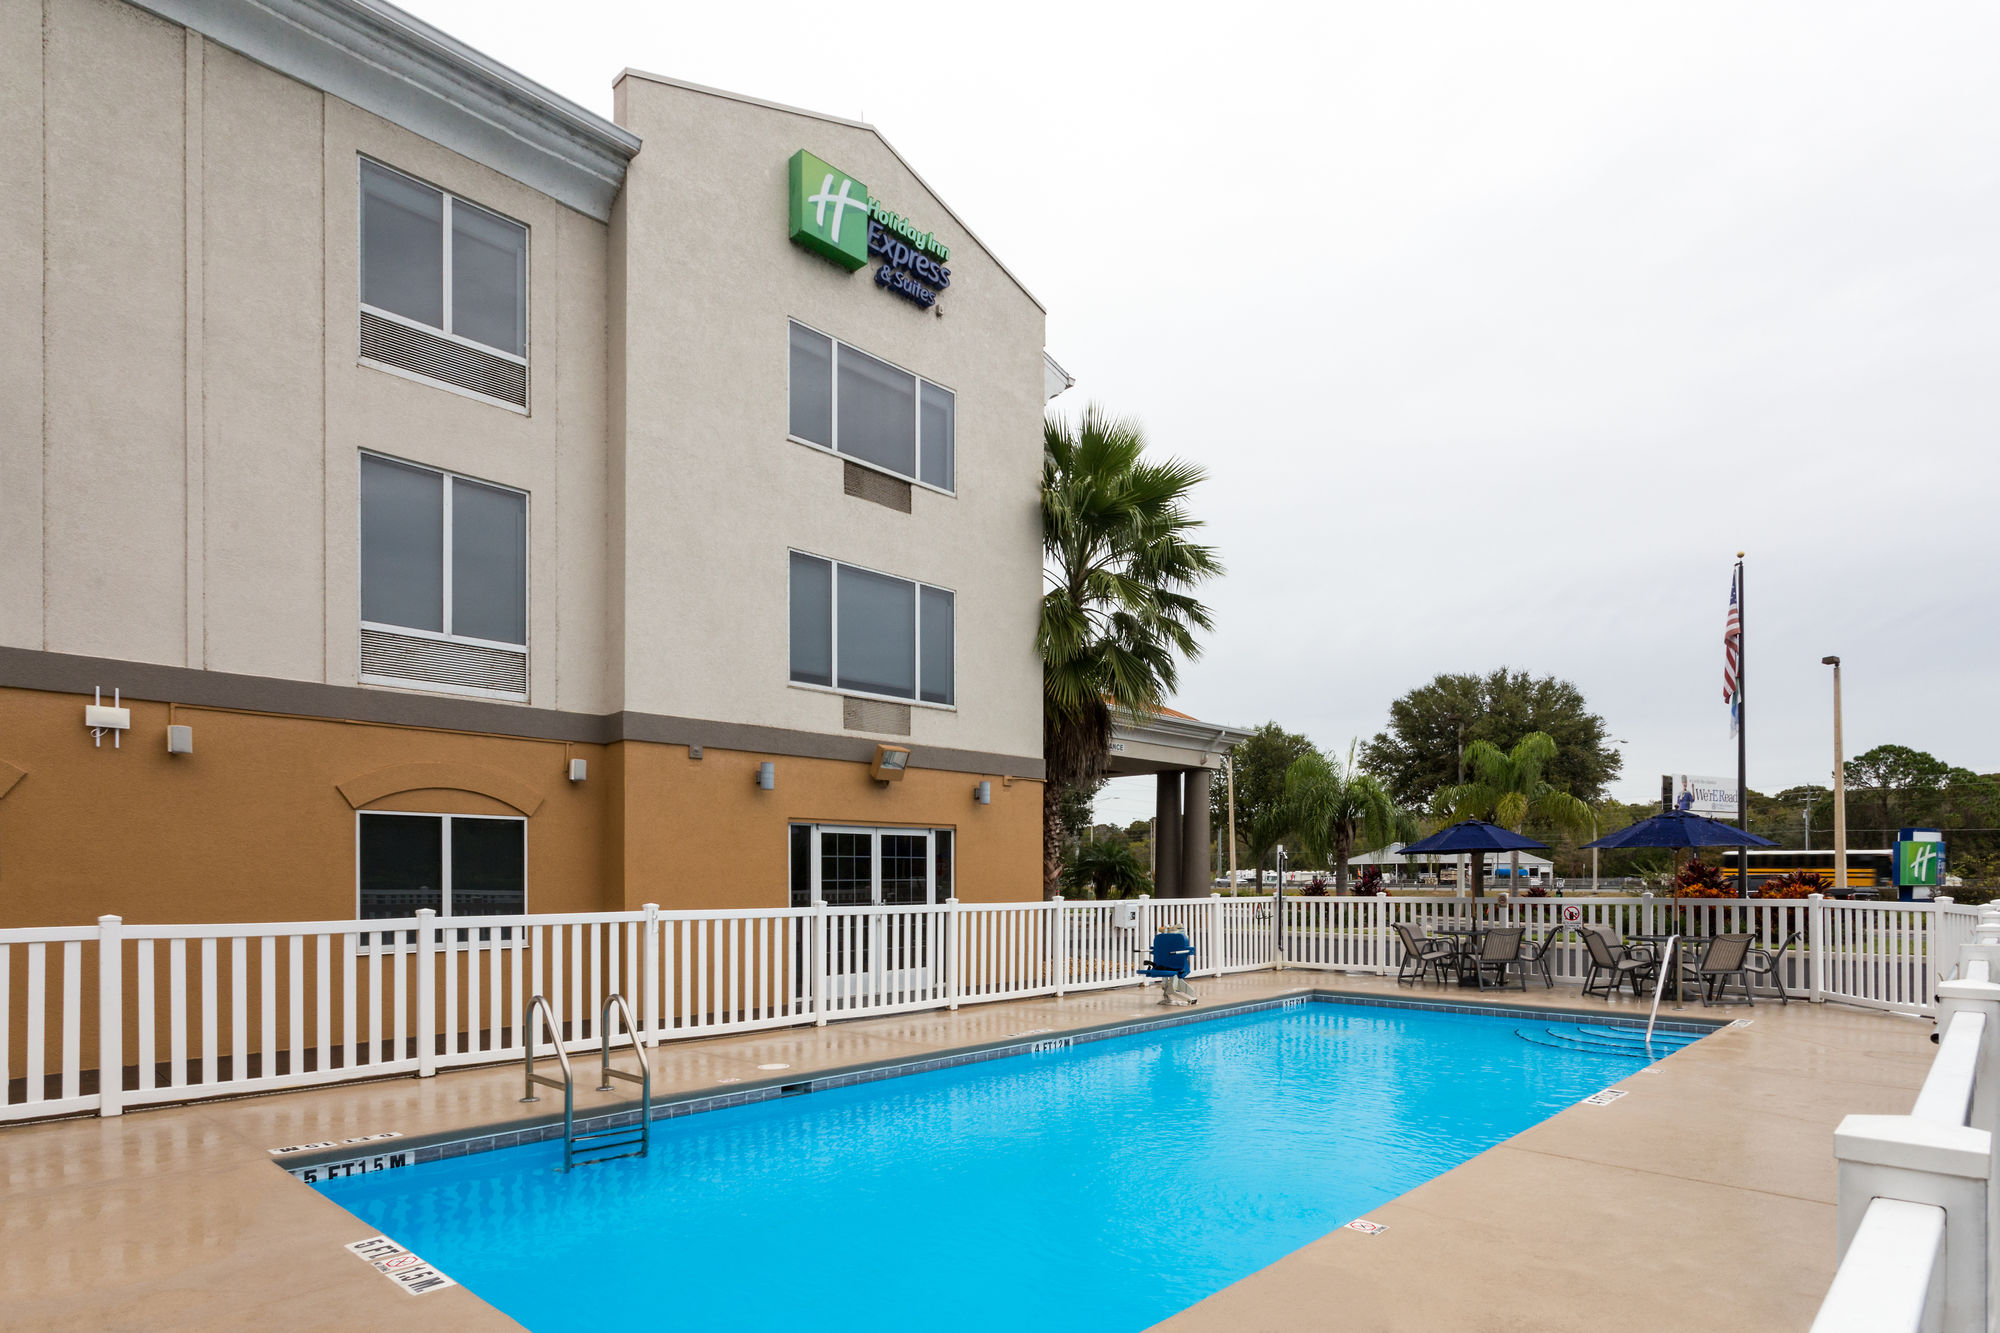 Holiday Inn Express Hotel & Suites Tavares - Leesburg in Tavares, FL